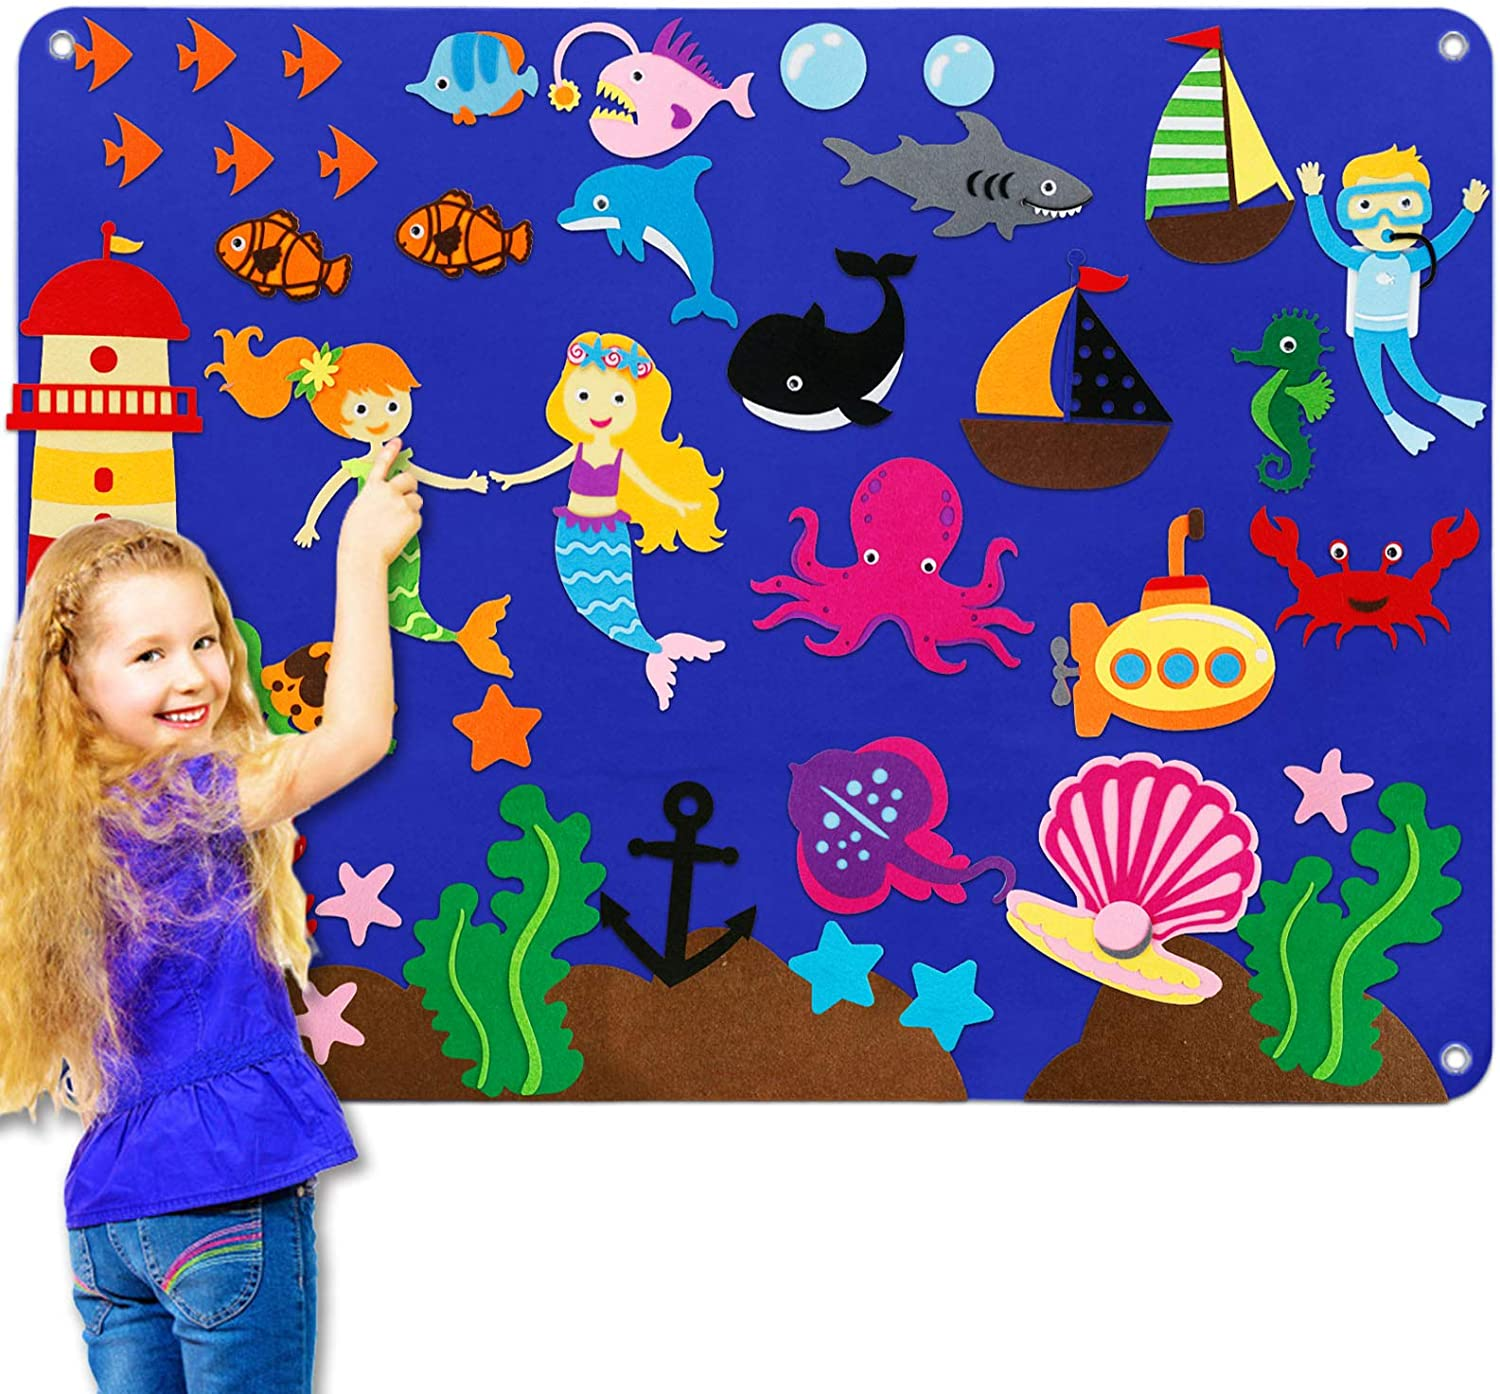 Preschool Felt Flannel-Board Stories Set for Toddlers, Under The Sea World Craft Toy Gifts for Kids, Large Wall Hang Storytelling Activity Storyboard